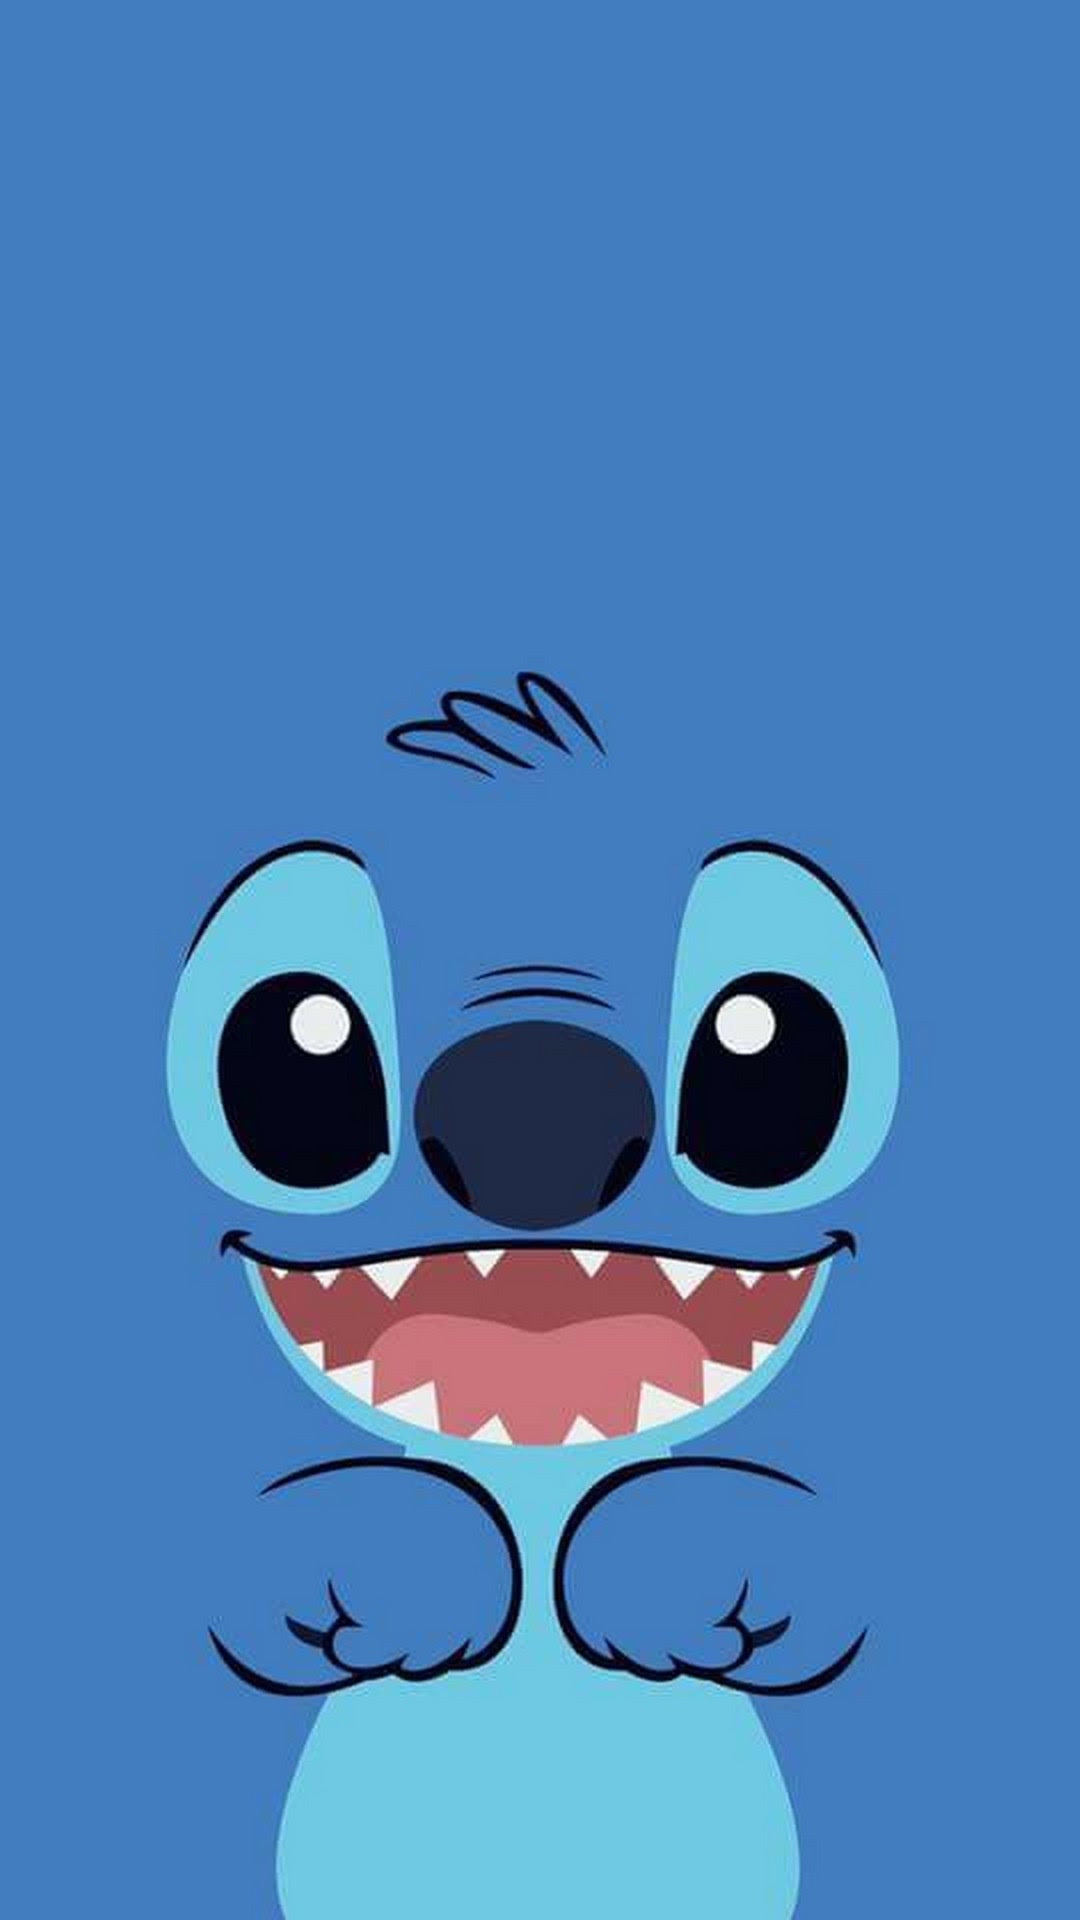 Cute Disney Wallpapers for iPhone (80+ images)